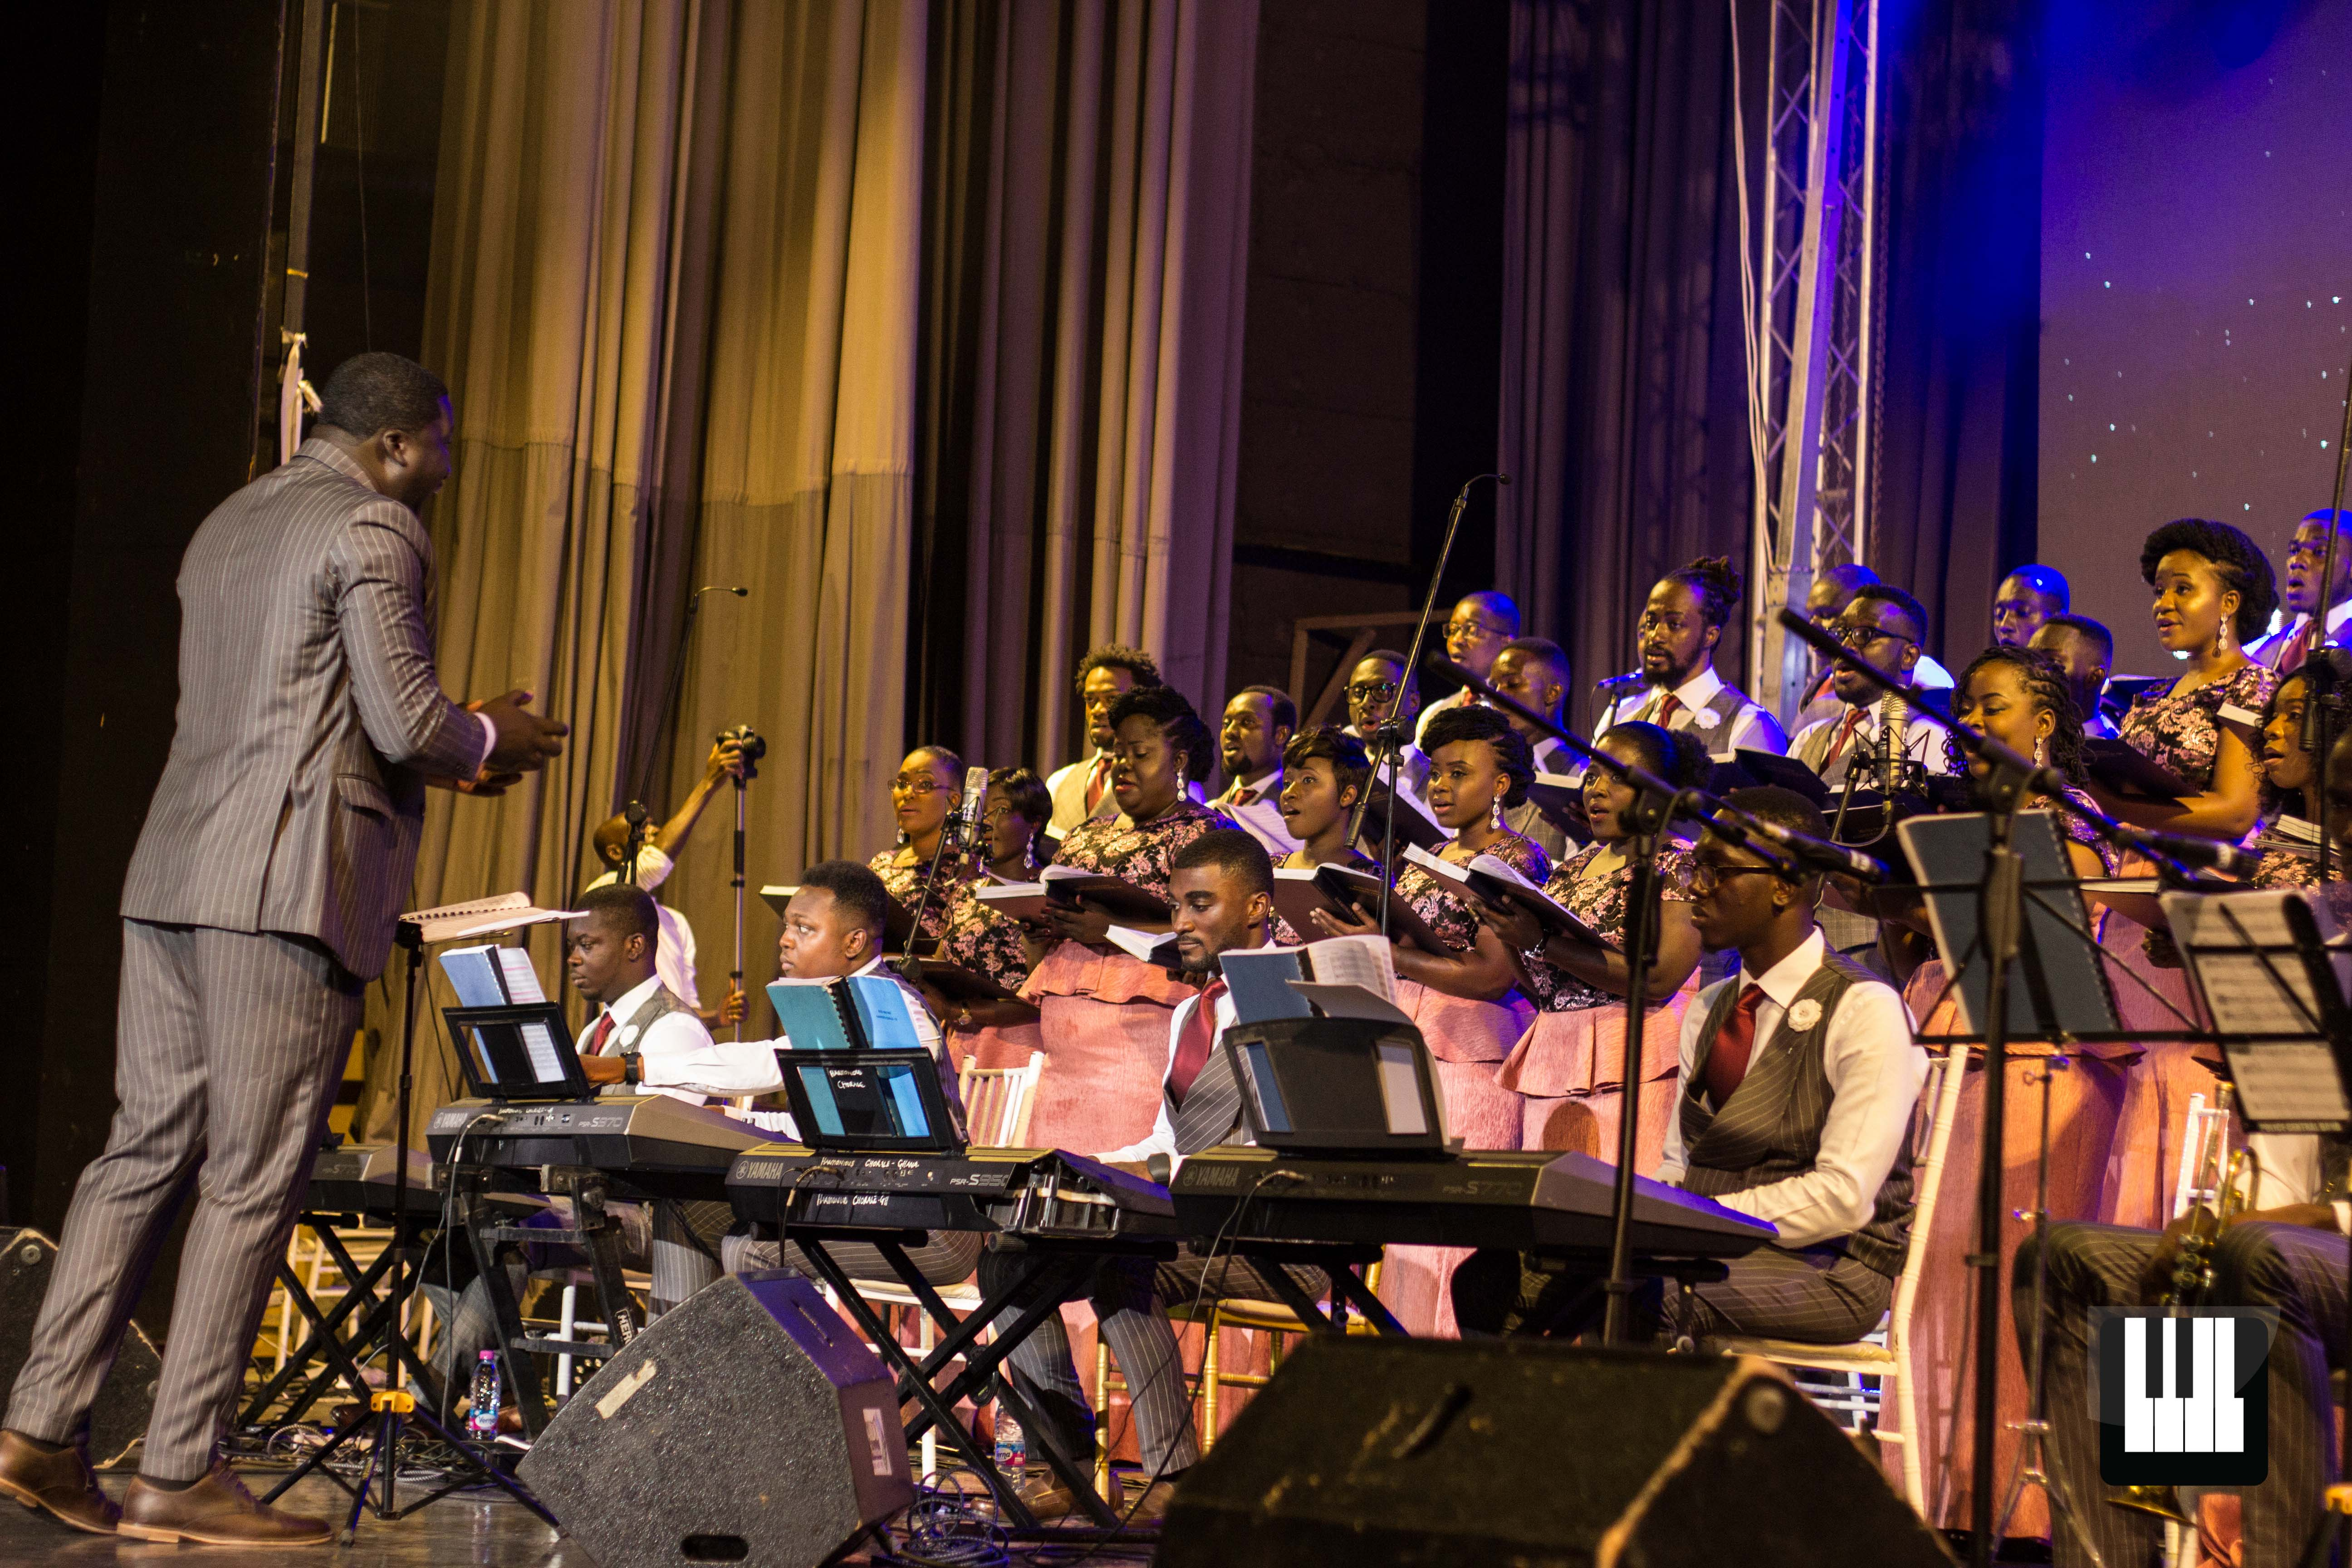 The Fantastic Four of Harmonious Chorale Kwaku Boakye-Frempong spoke to Augustine Sobeng, principal organist at Harmonious Chorale, to delve into the art of orchestra-emulation with electronic keyboards.